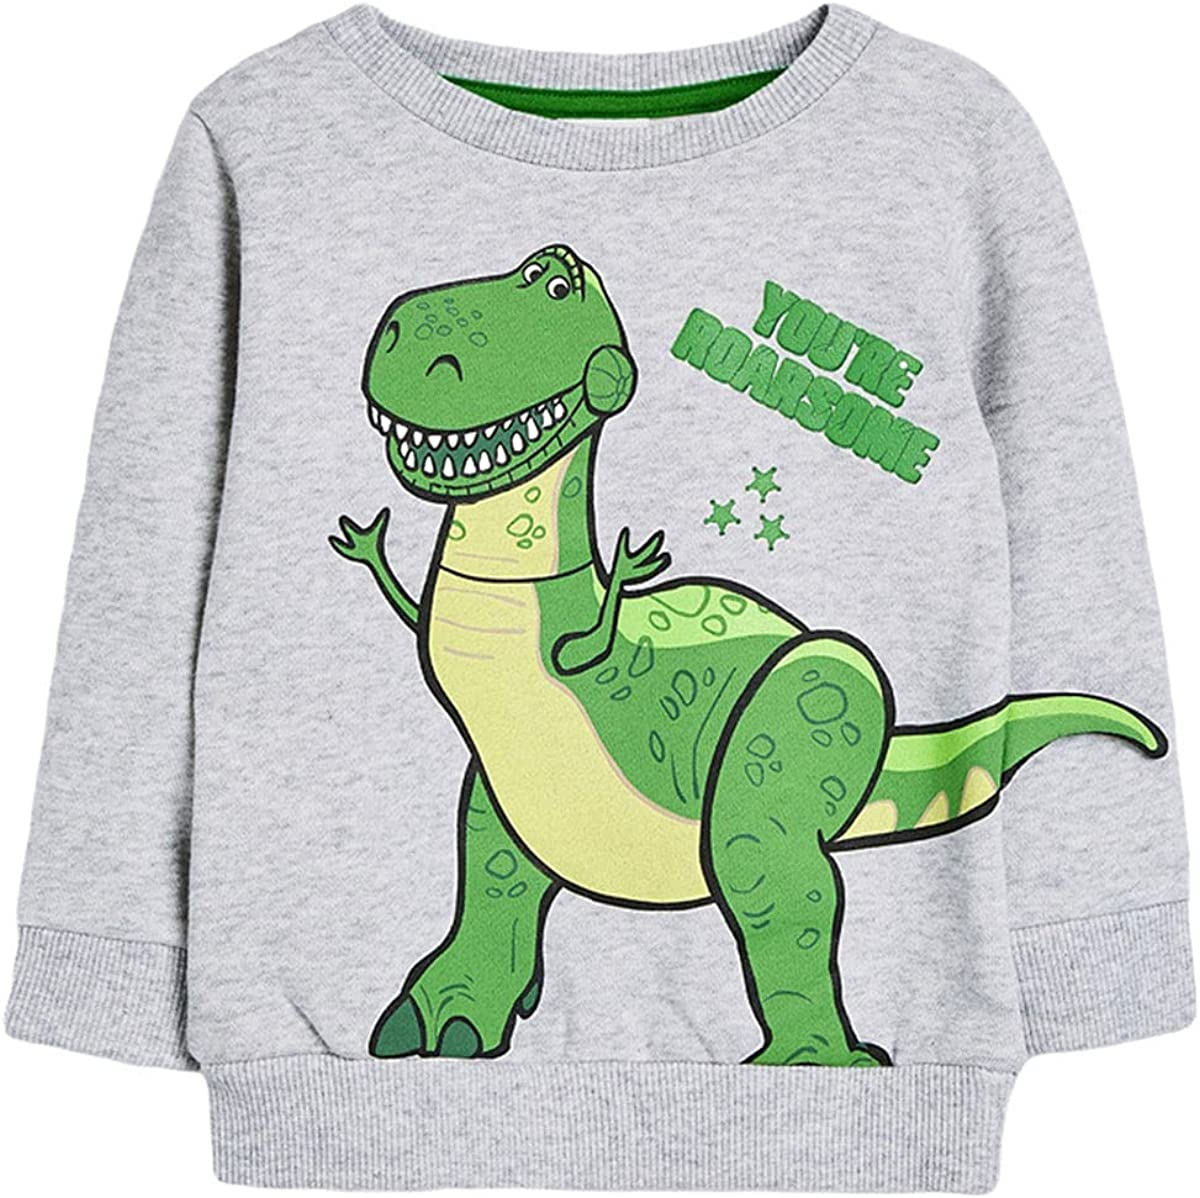 Toddler Boy's Long-Sleeve Pullover Sweater Cartoon Graphic Cotton Tee 2-7T